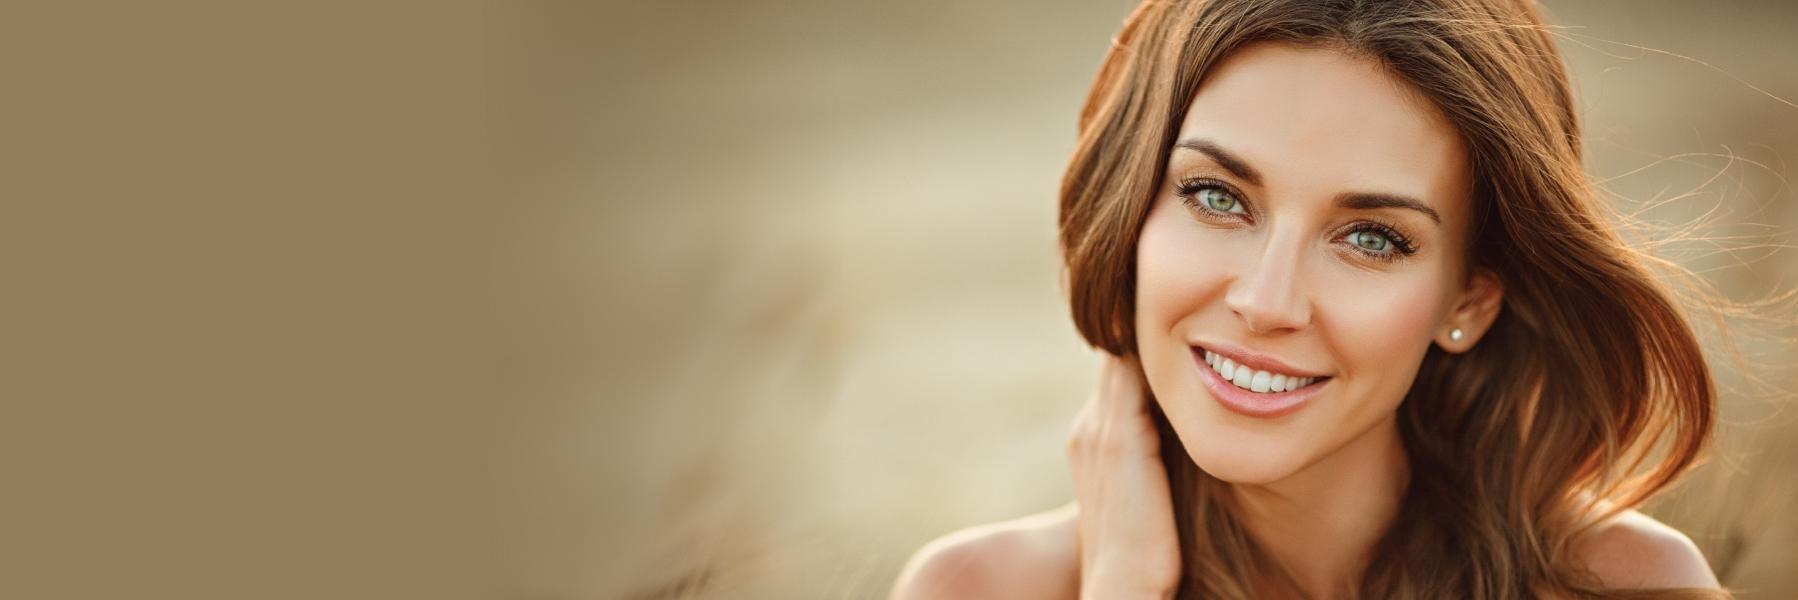 Woman with brown hair smiling l Invisalign new york ny